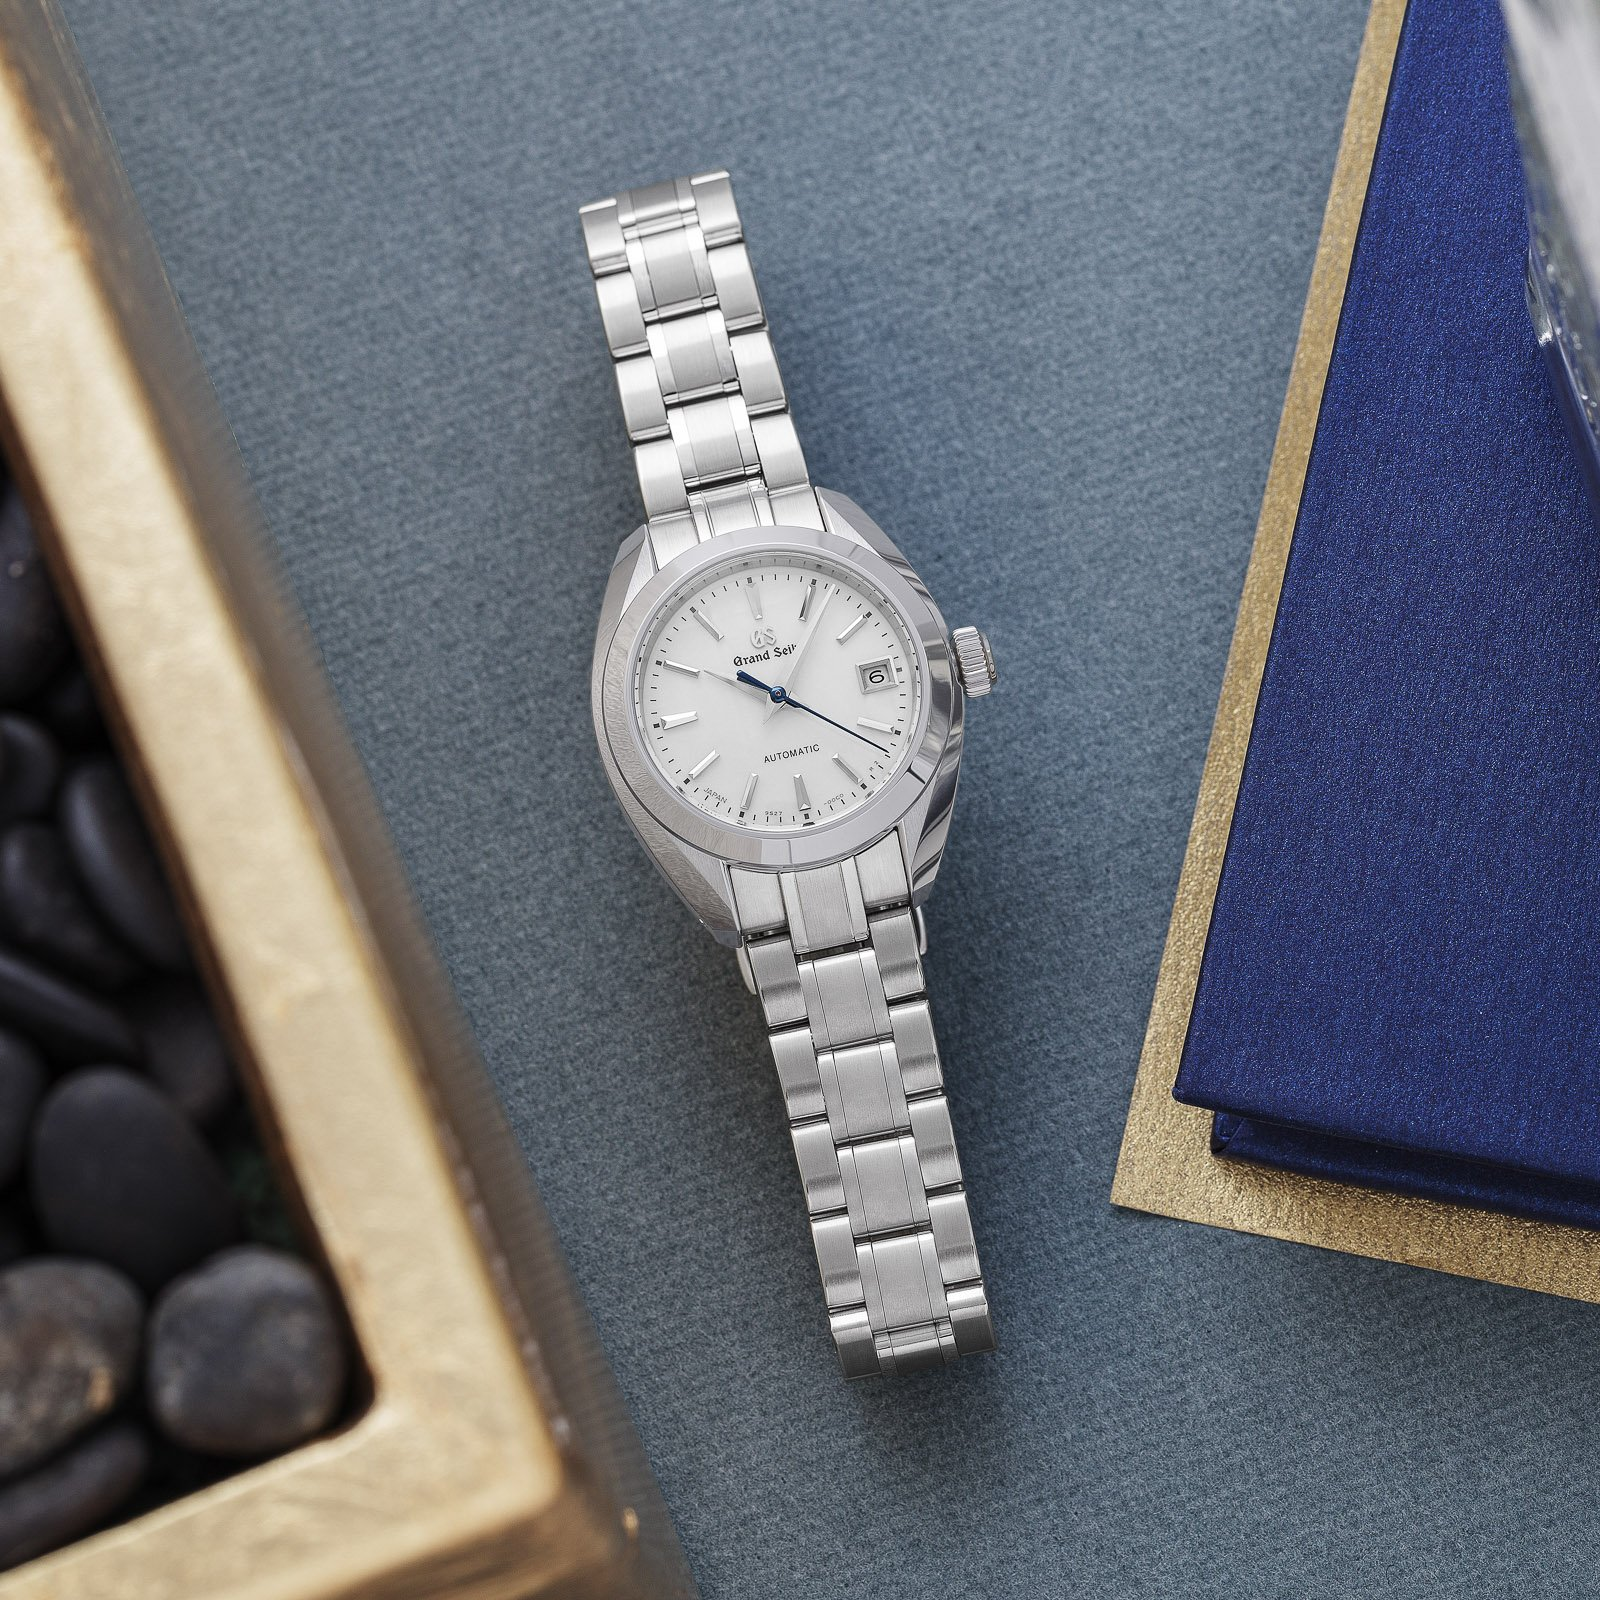 Grand Seiko model STGK009 - wristwatch with a white dial and stainless steel case atop a table.